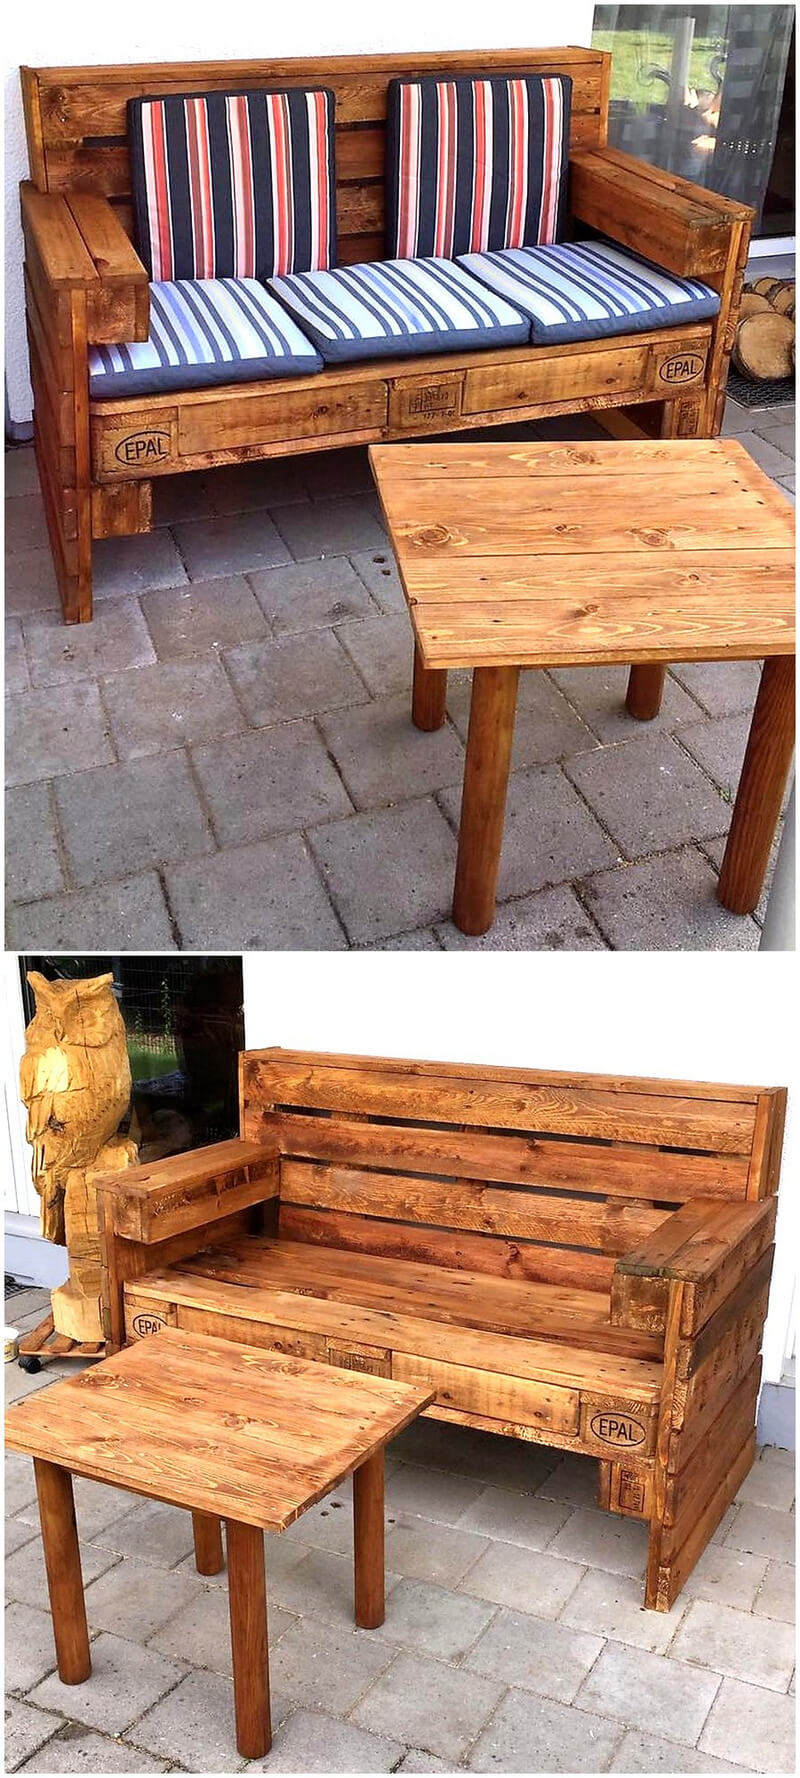 pallets wooden patio couch with table